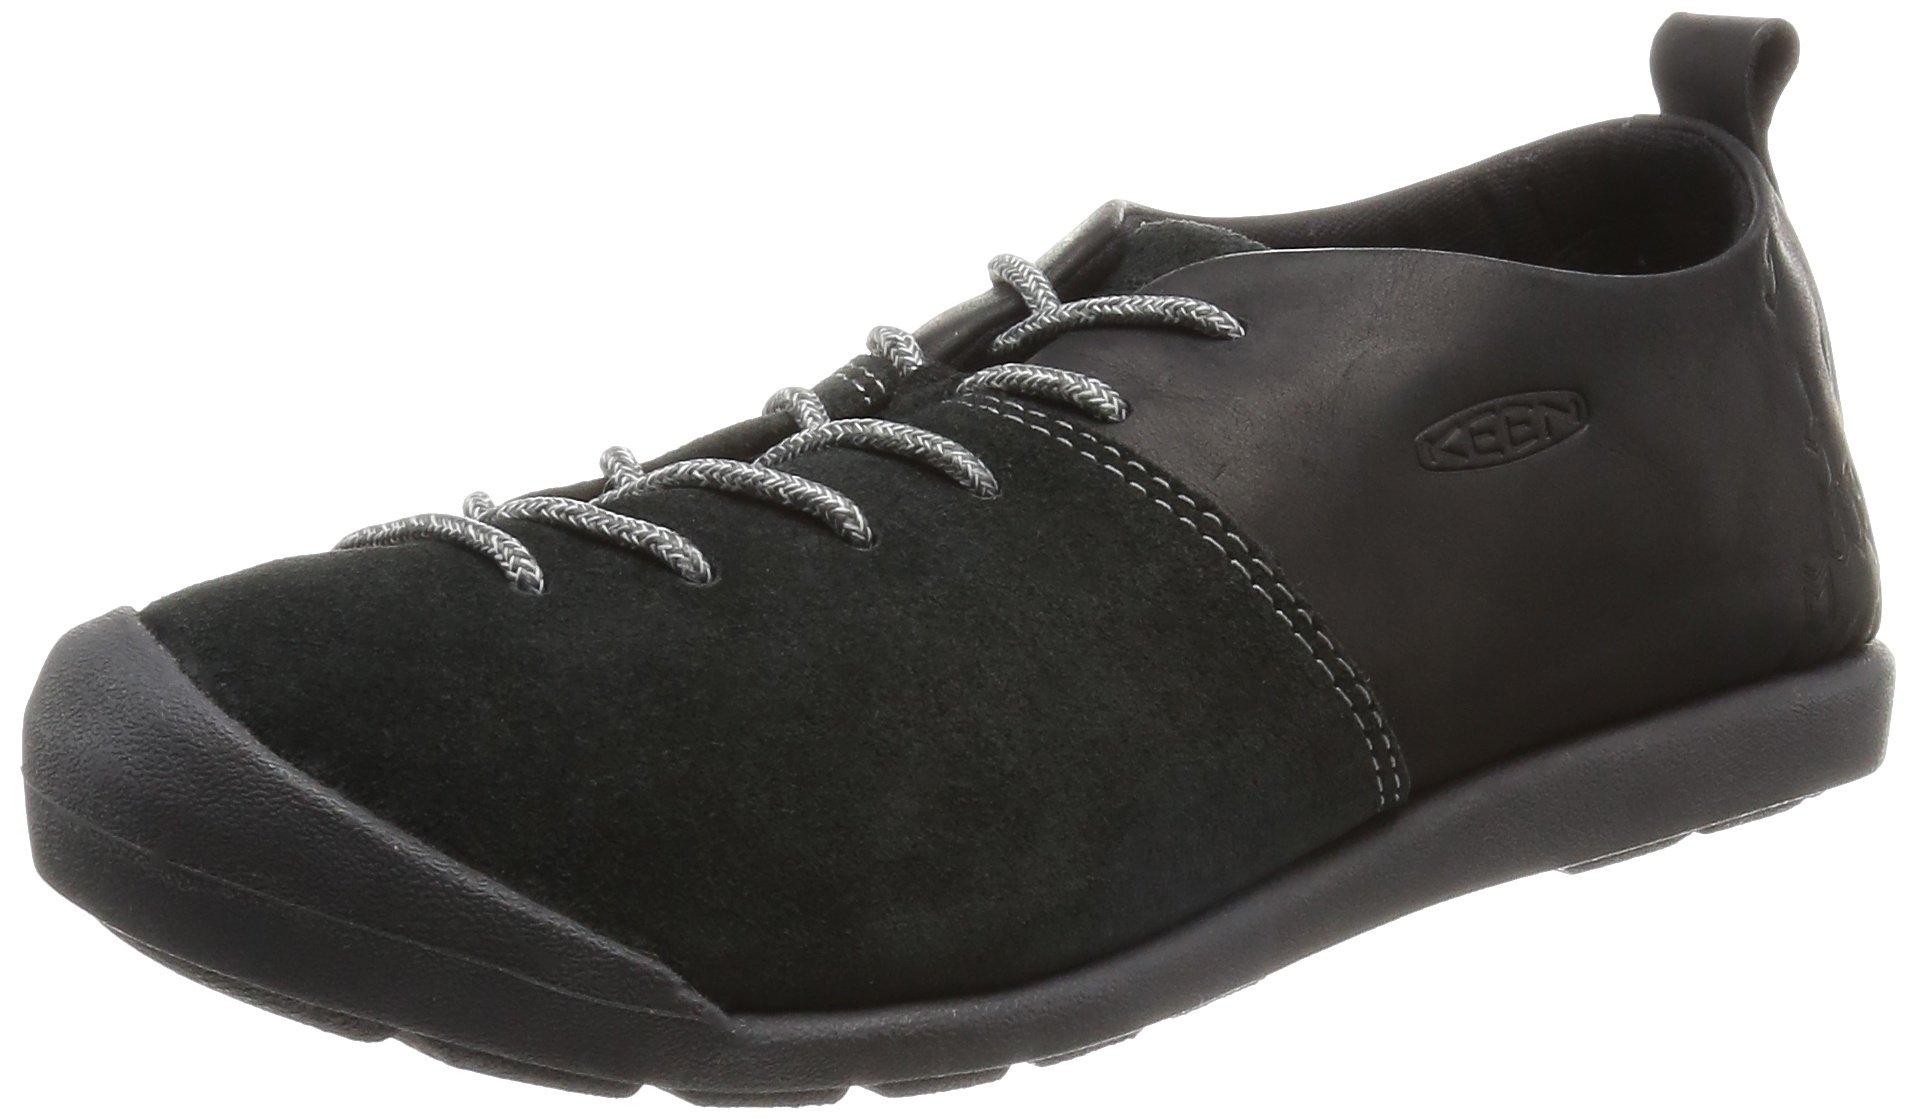 KEEN Women's Lower East Side Lace Shoe, Black, 8 M US by Keen